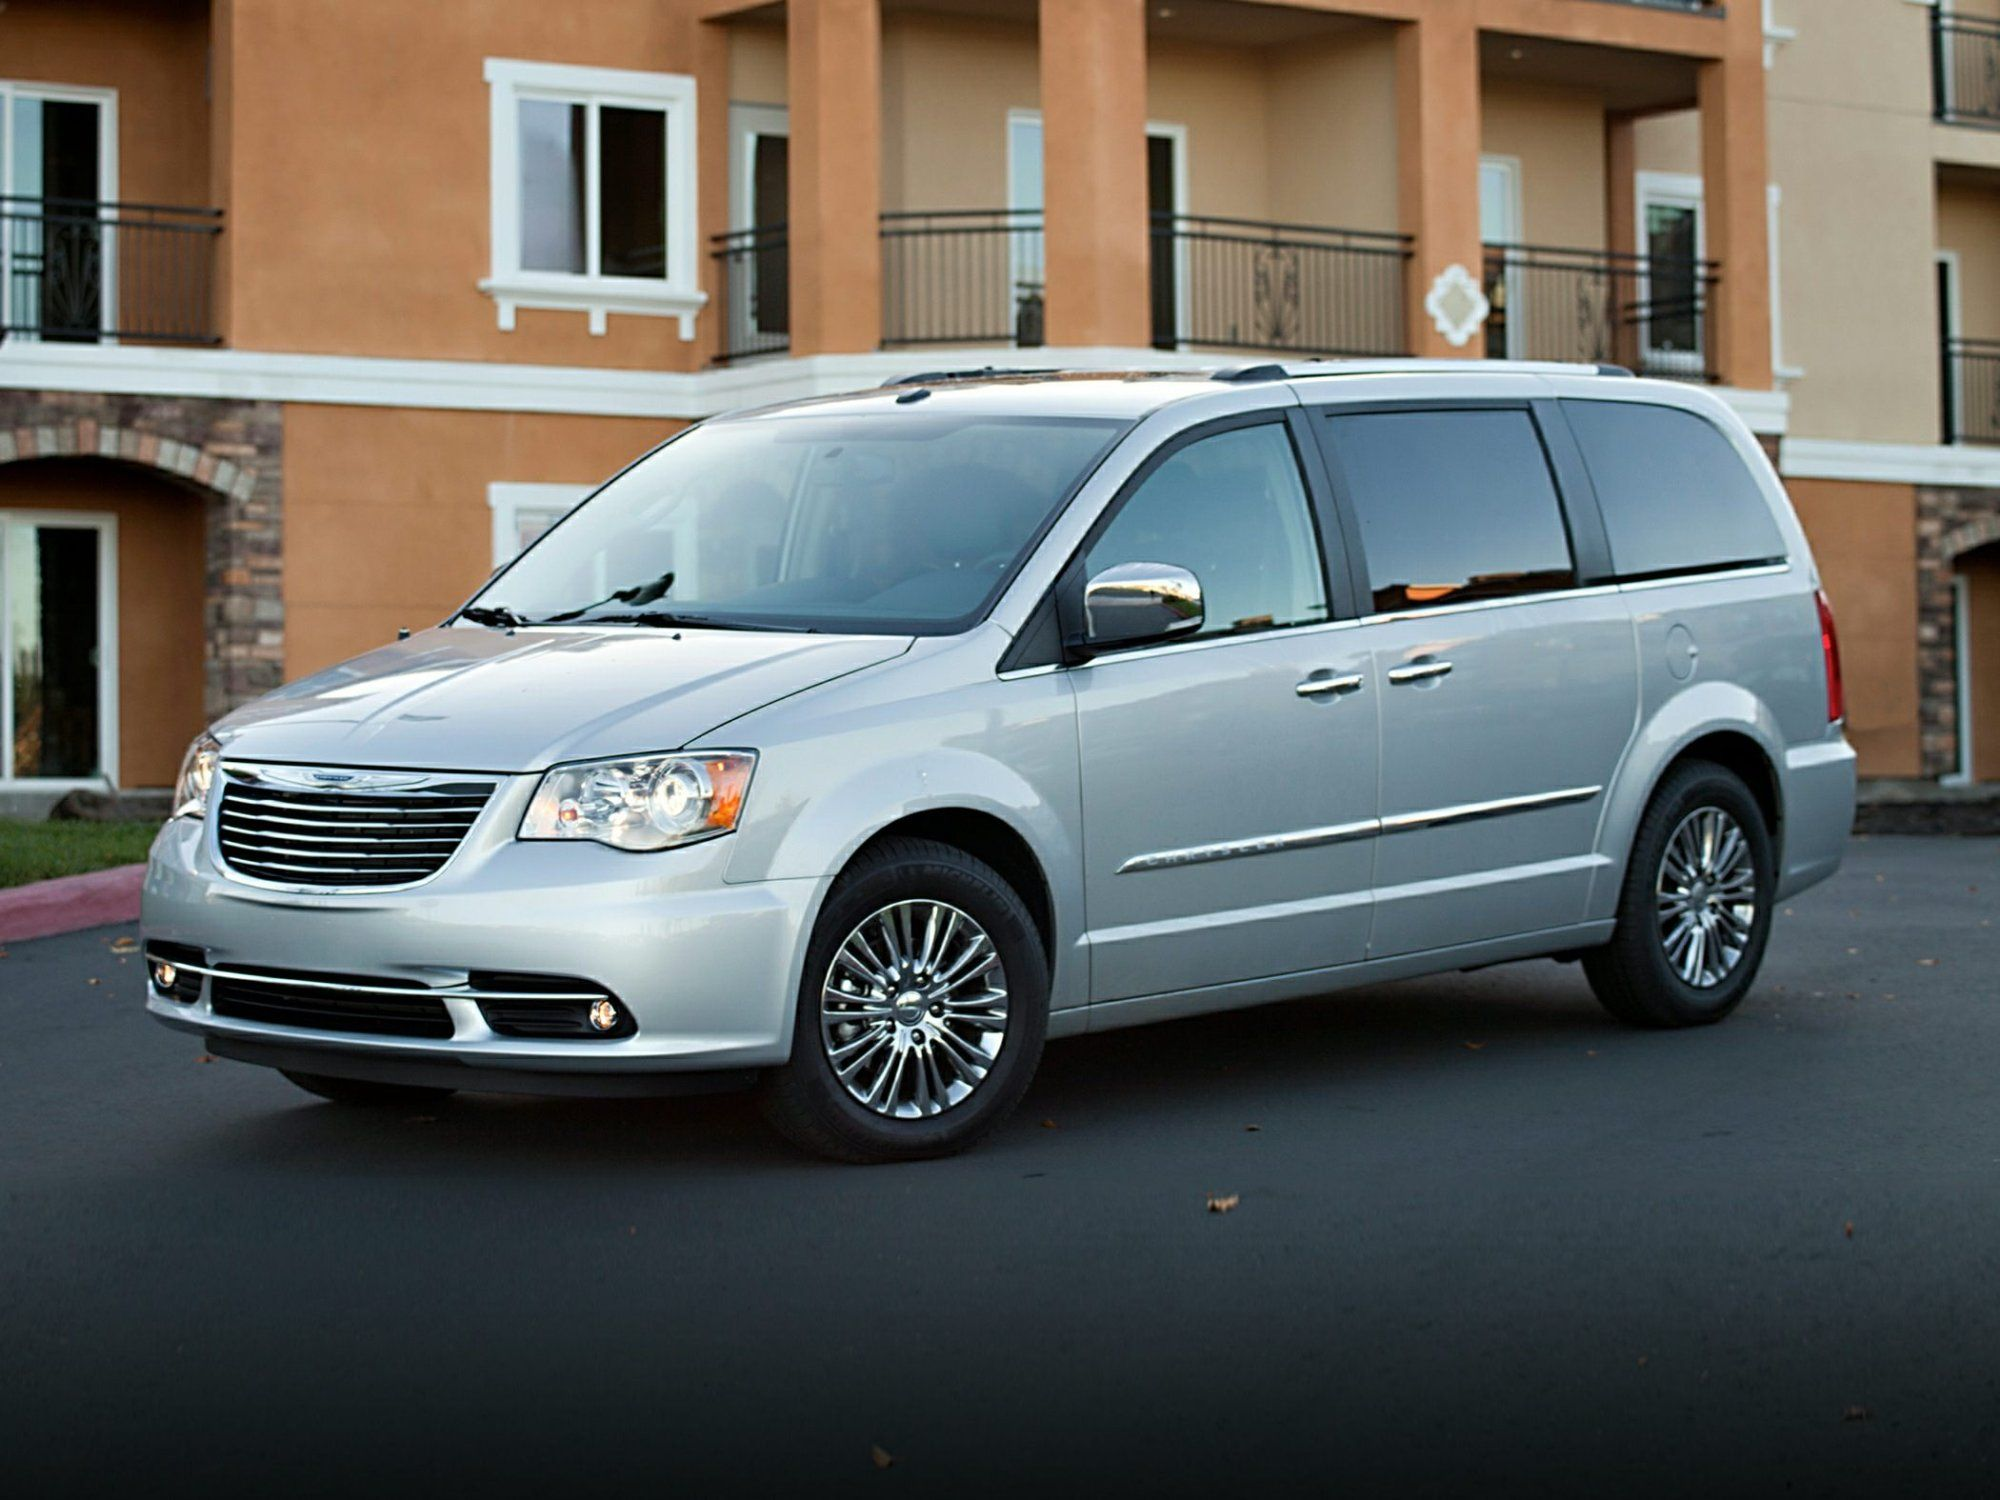 Top 20 New Cars Coming In 2014 Chrysler Town And Country Mini